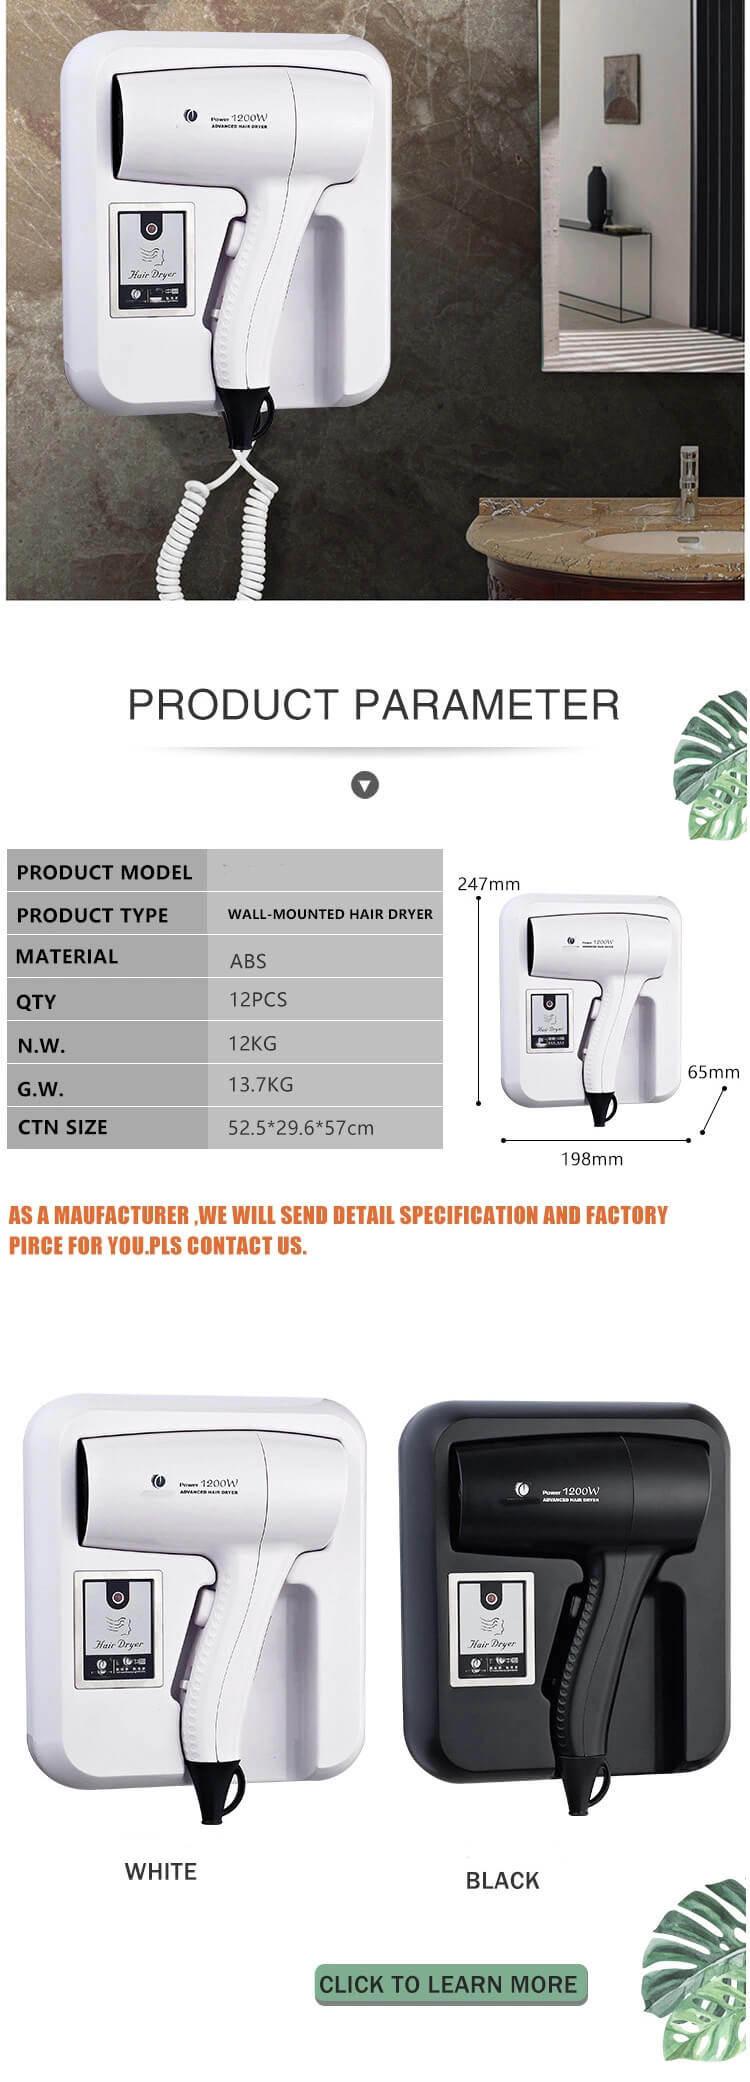 Parameters of 1200W Wall Mounted Hair Dryer